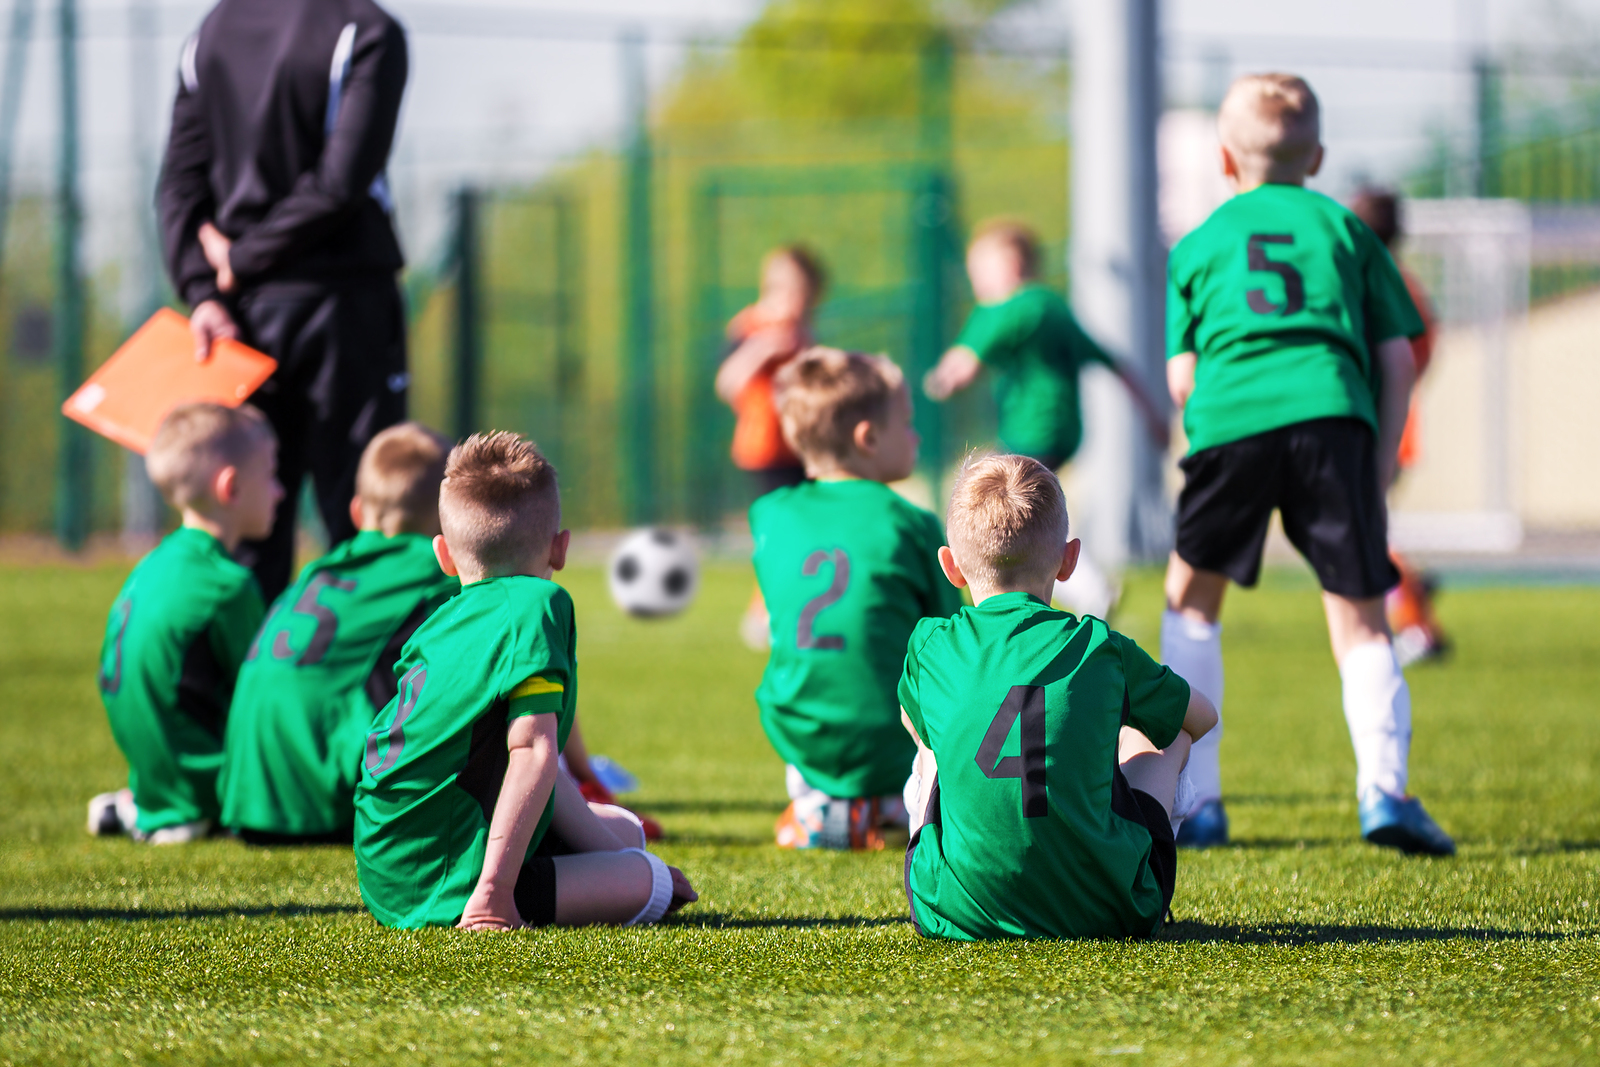 as you might guess i receive a lot of questions from sport parents about what to do and not do in order to provide a fun and meaningful youth sport